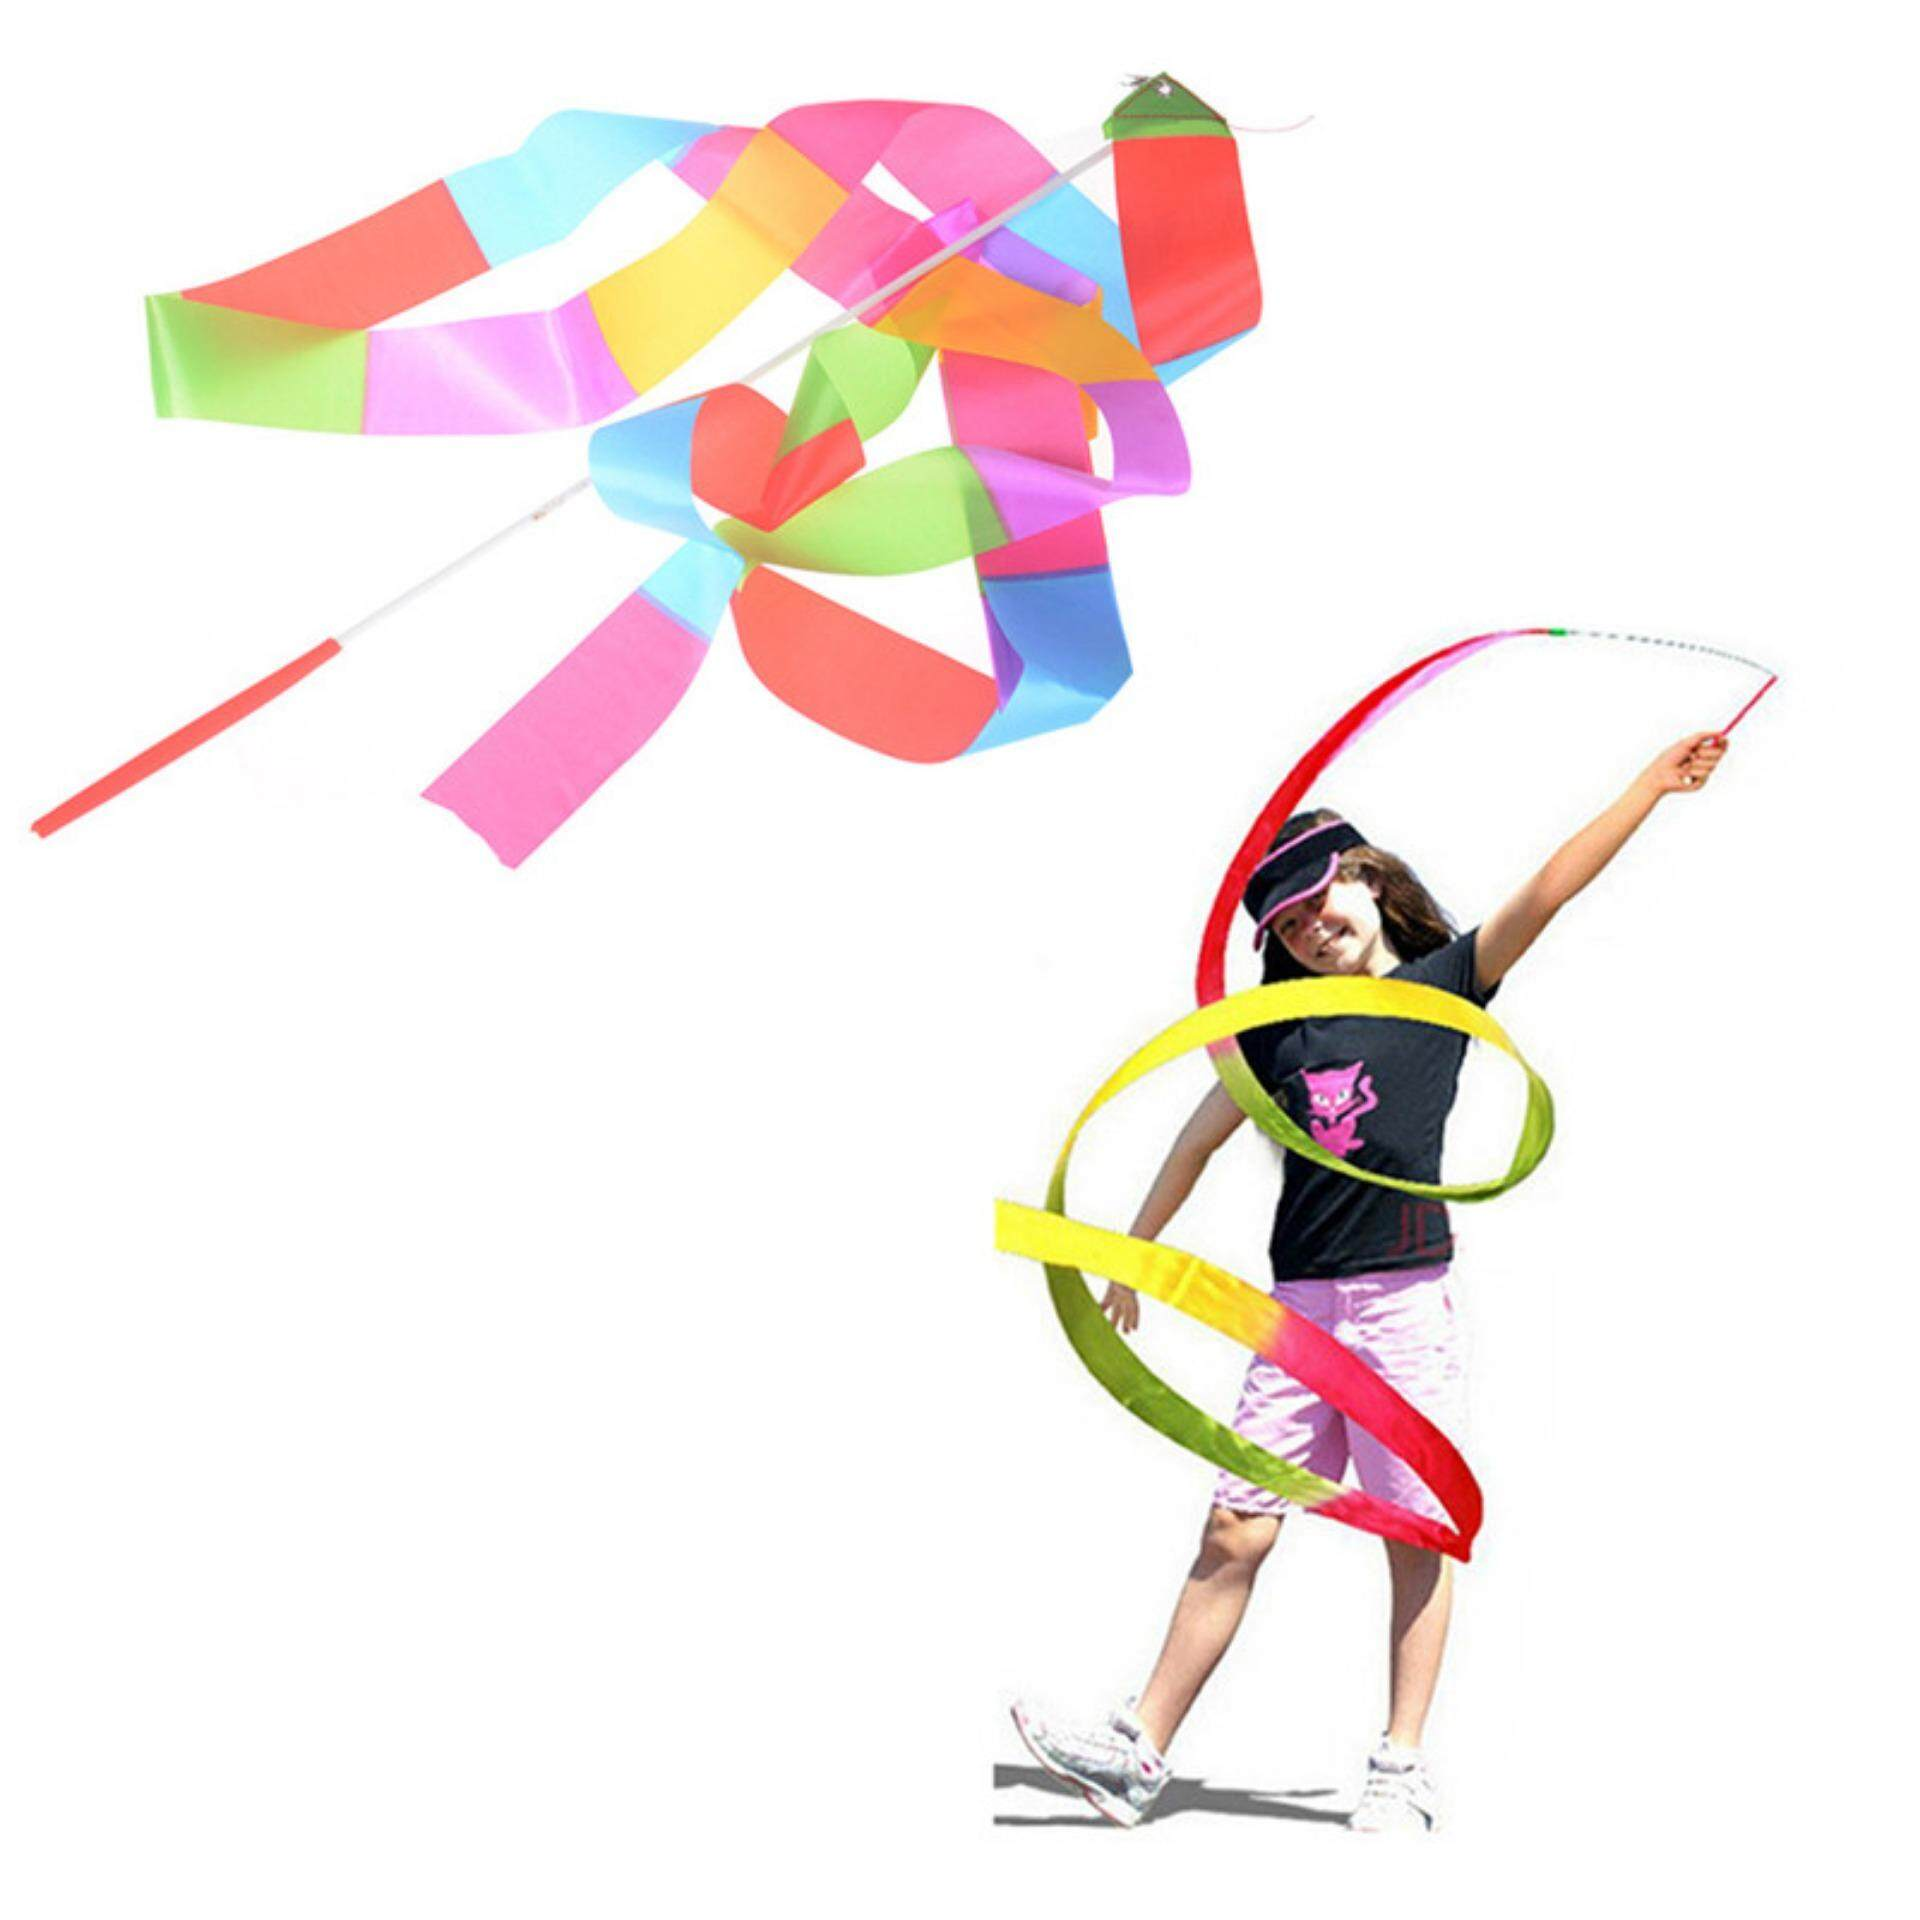 Popular Colorful 4m Ribbon Gymnastics Dance Dancer Toy Kid Outdoor Sport Toy By A Mango.